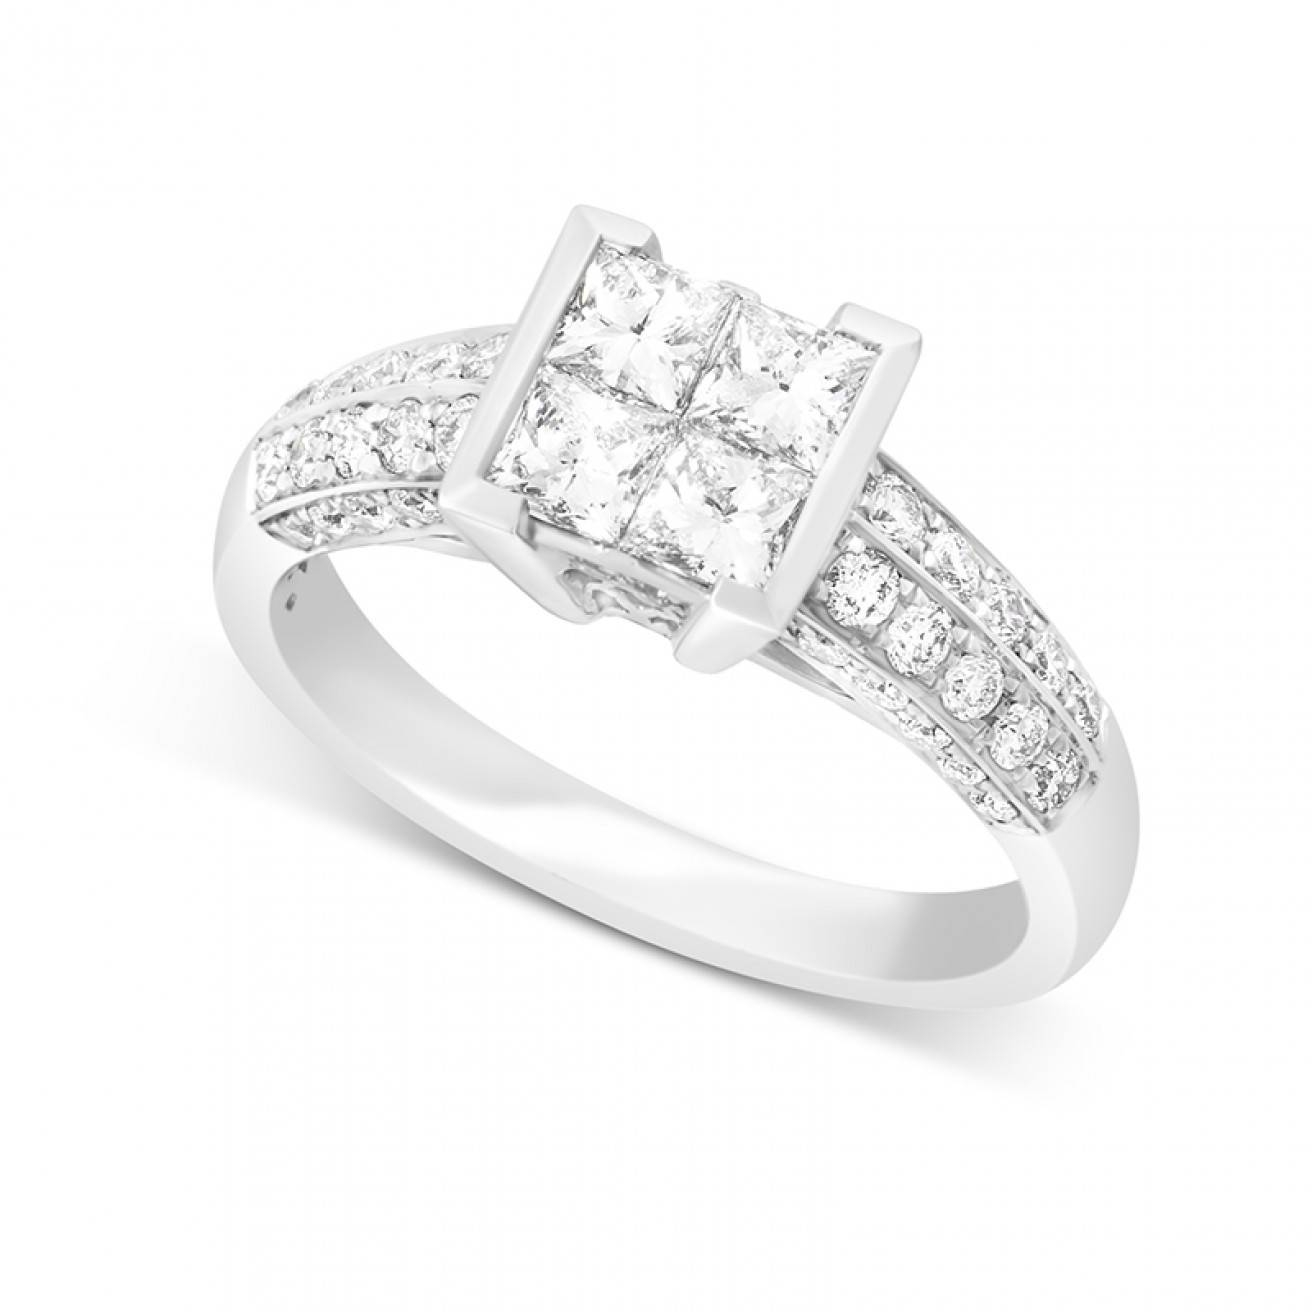 Buy Diamond Engagement Rings Online – Fraser Hart Intended For Discontinued Engagement Rings (View 5 of 15)